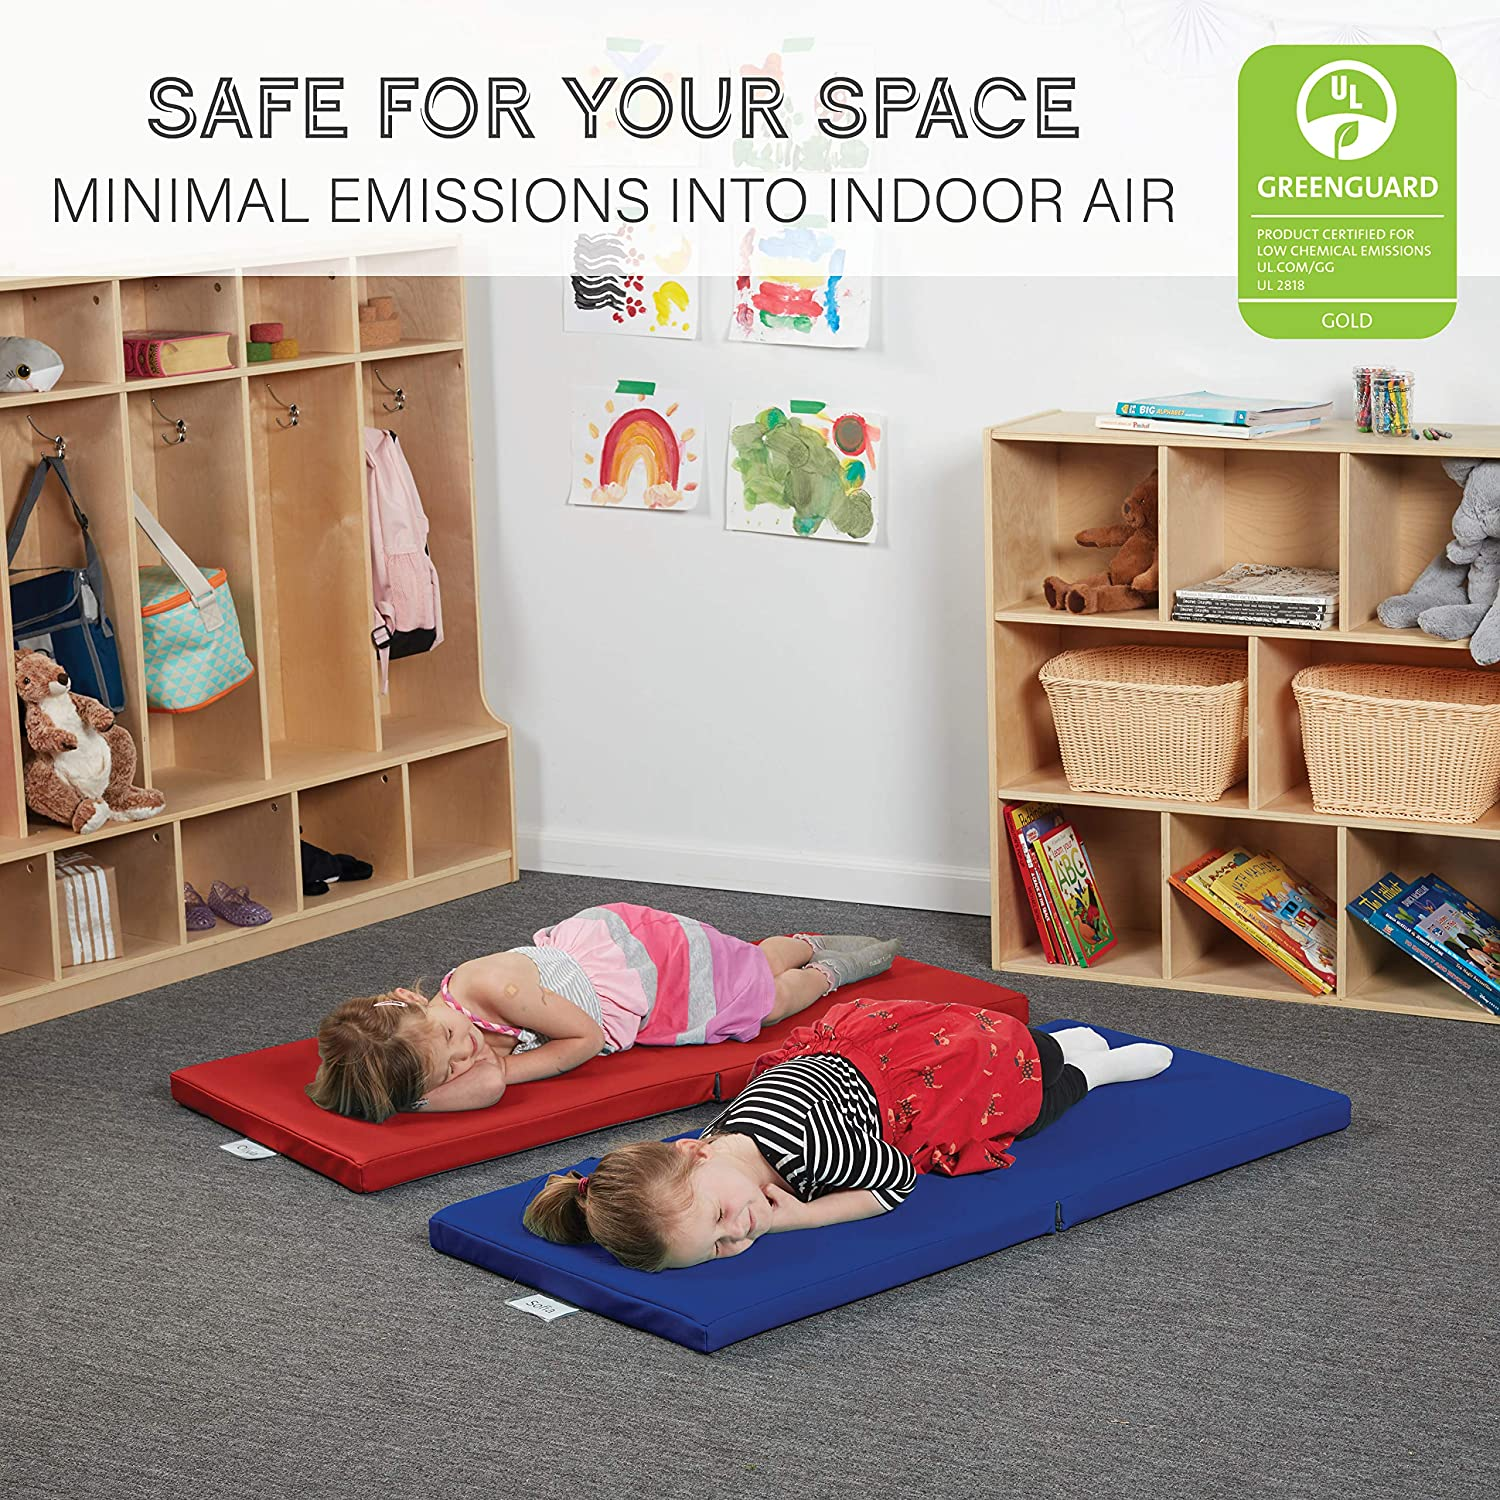 Amazon Com Softscape 2 Fold Children S Rest Nap Mat For Home Daycares Classrooms 2 Inch Thick Foam With Built In Handles And Name Tag Holder 4 Piece Assorted Industrial Scientific